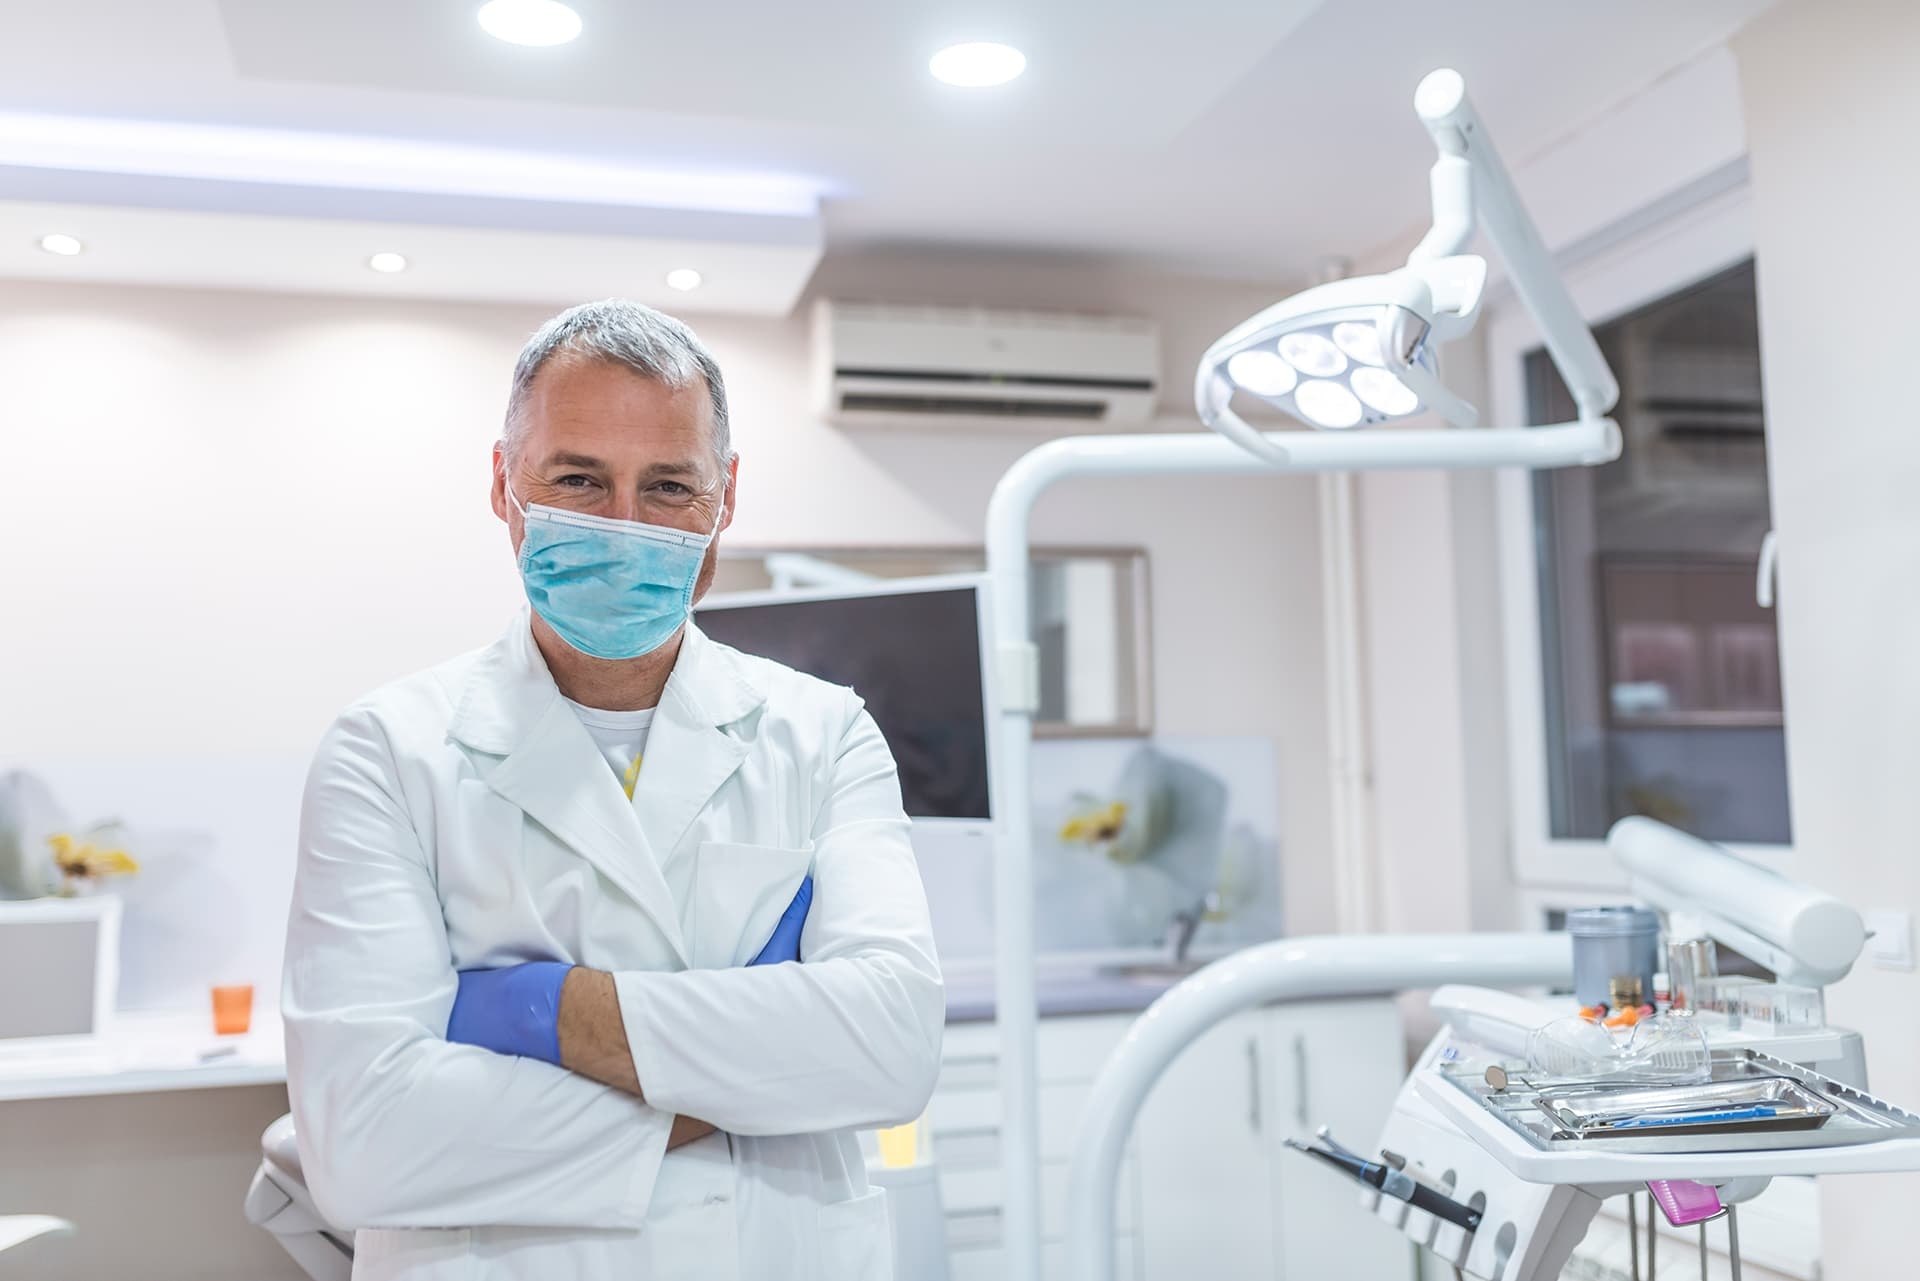 Root canal treatment or tooth extraction? Which to choose?